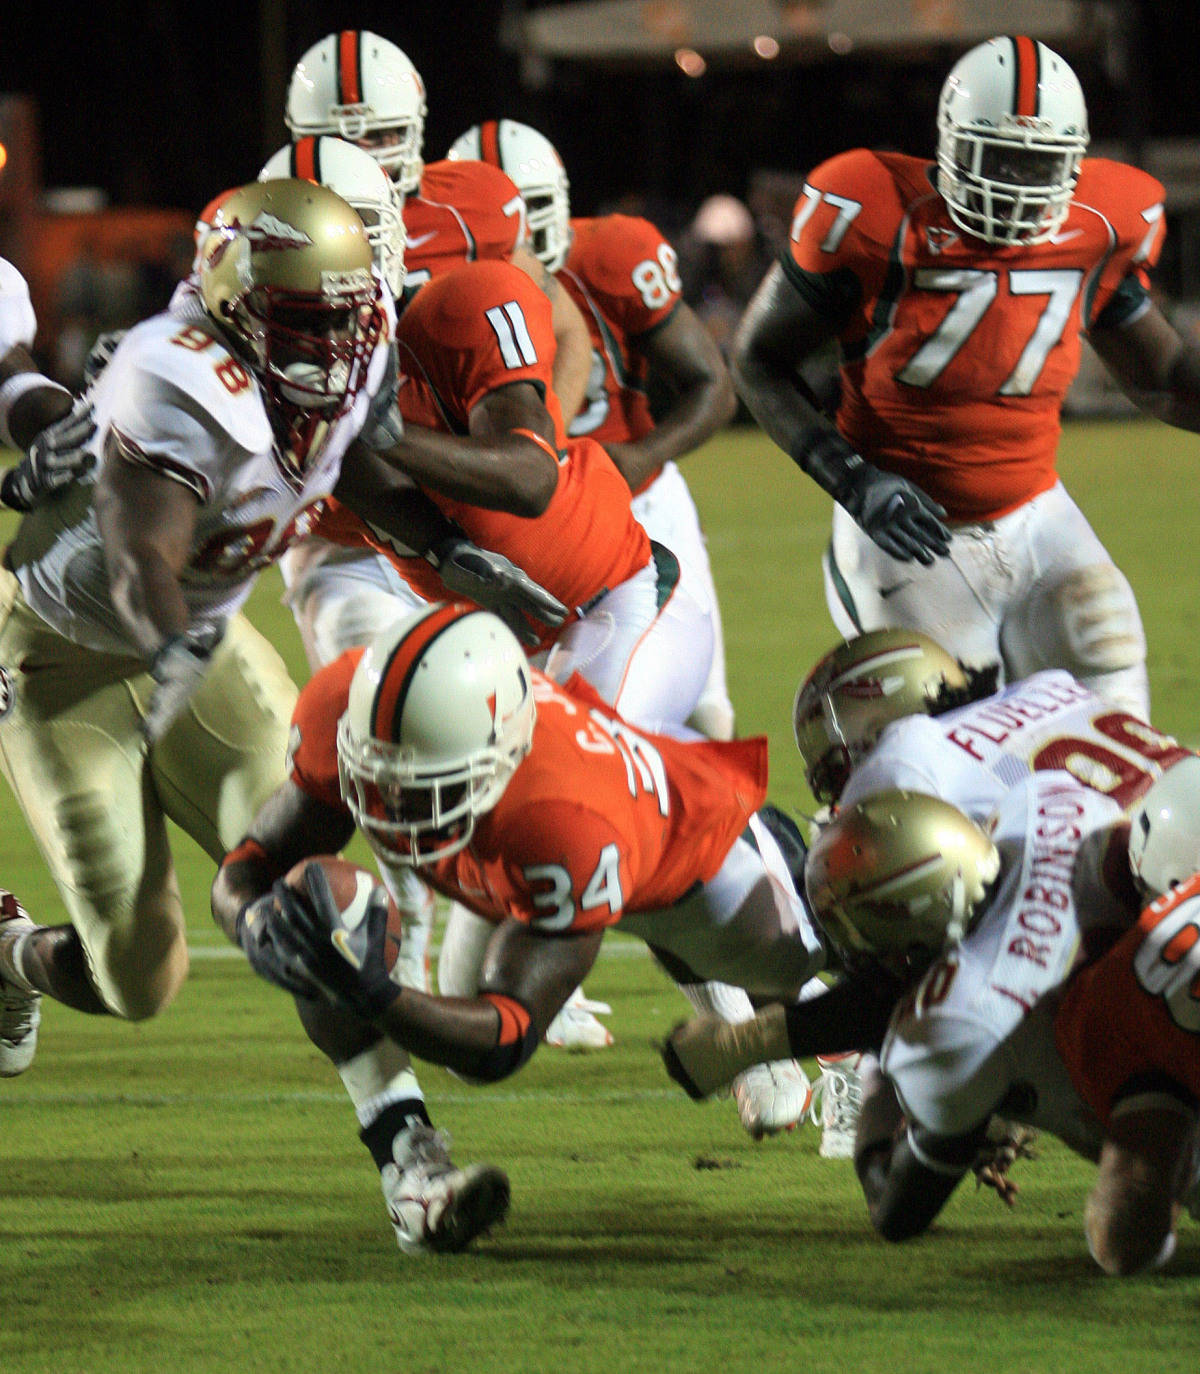 Miami runningback Charlie Jones (34) dives to the goal line for a touchdown during the second quarter of the football game against Florida State, Monday, Sept. 4, 2006 at the Orange Bowl in Miami. (AP Photo/Luis M. Alvarez)